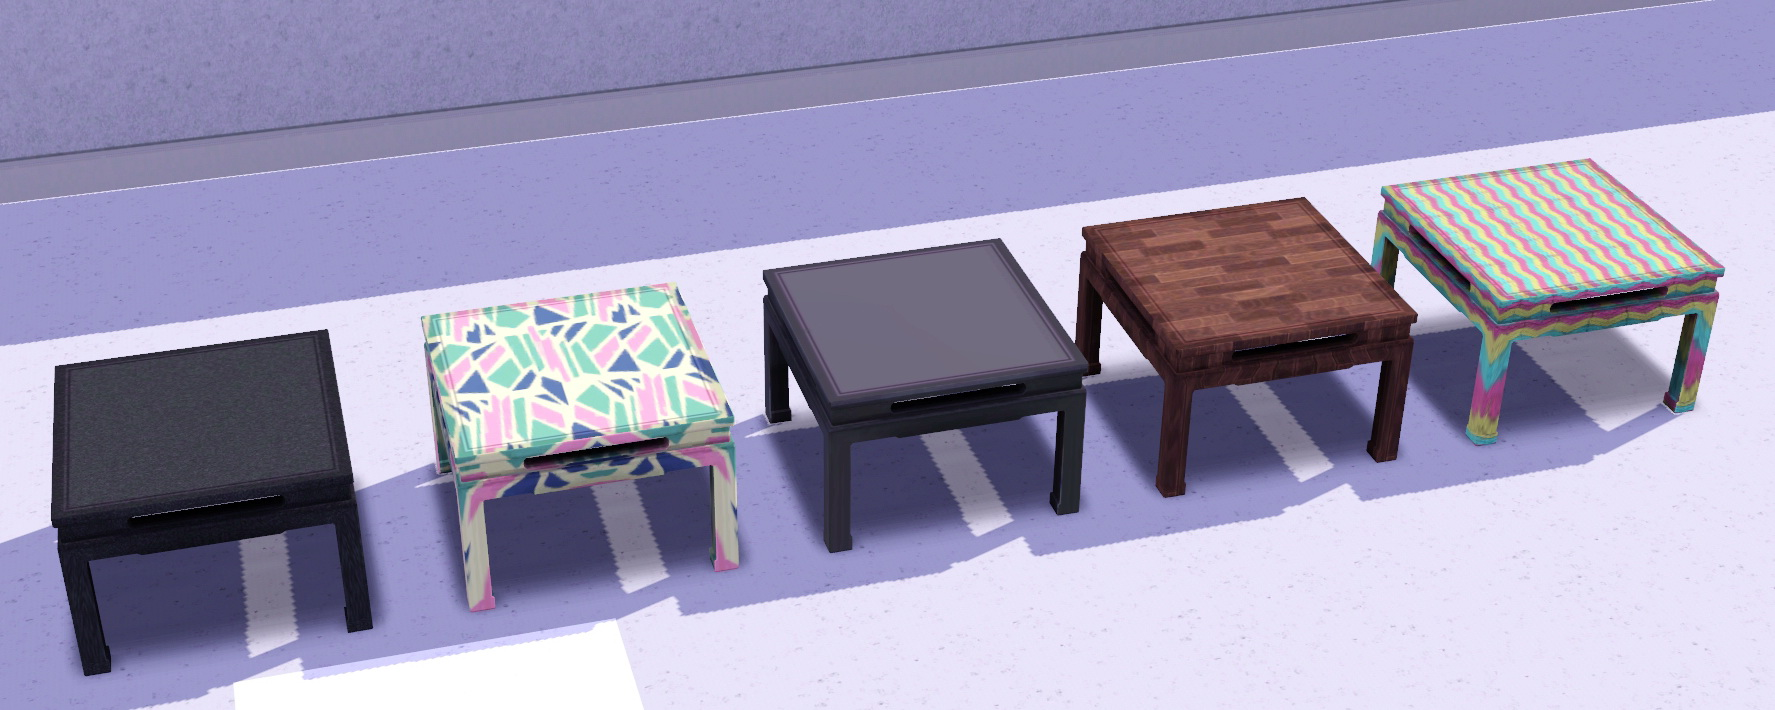 Mod The Sims Japanese Low Dining Table TS2 Bon Voyage